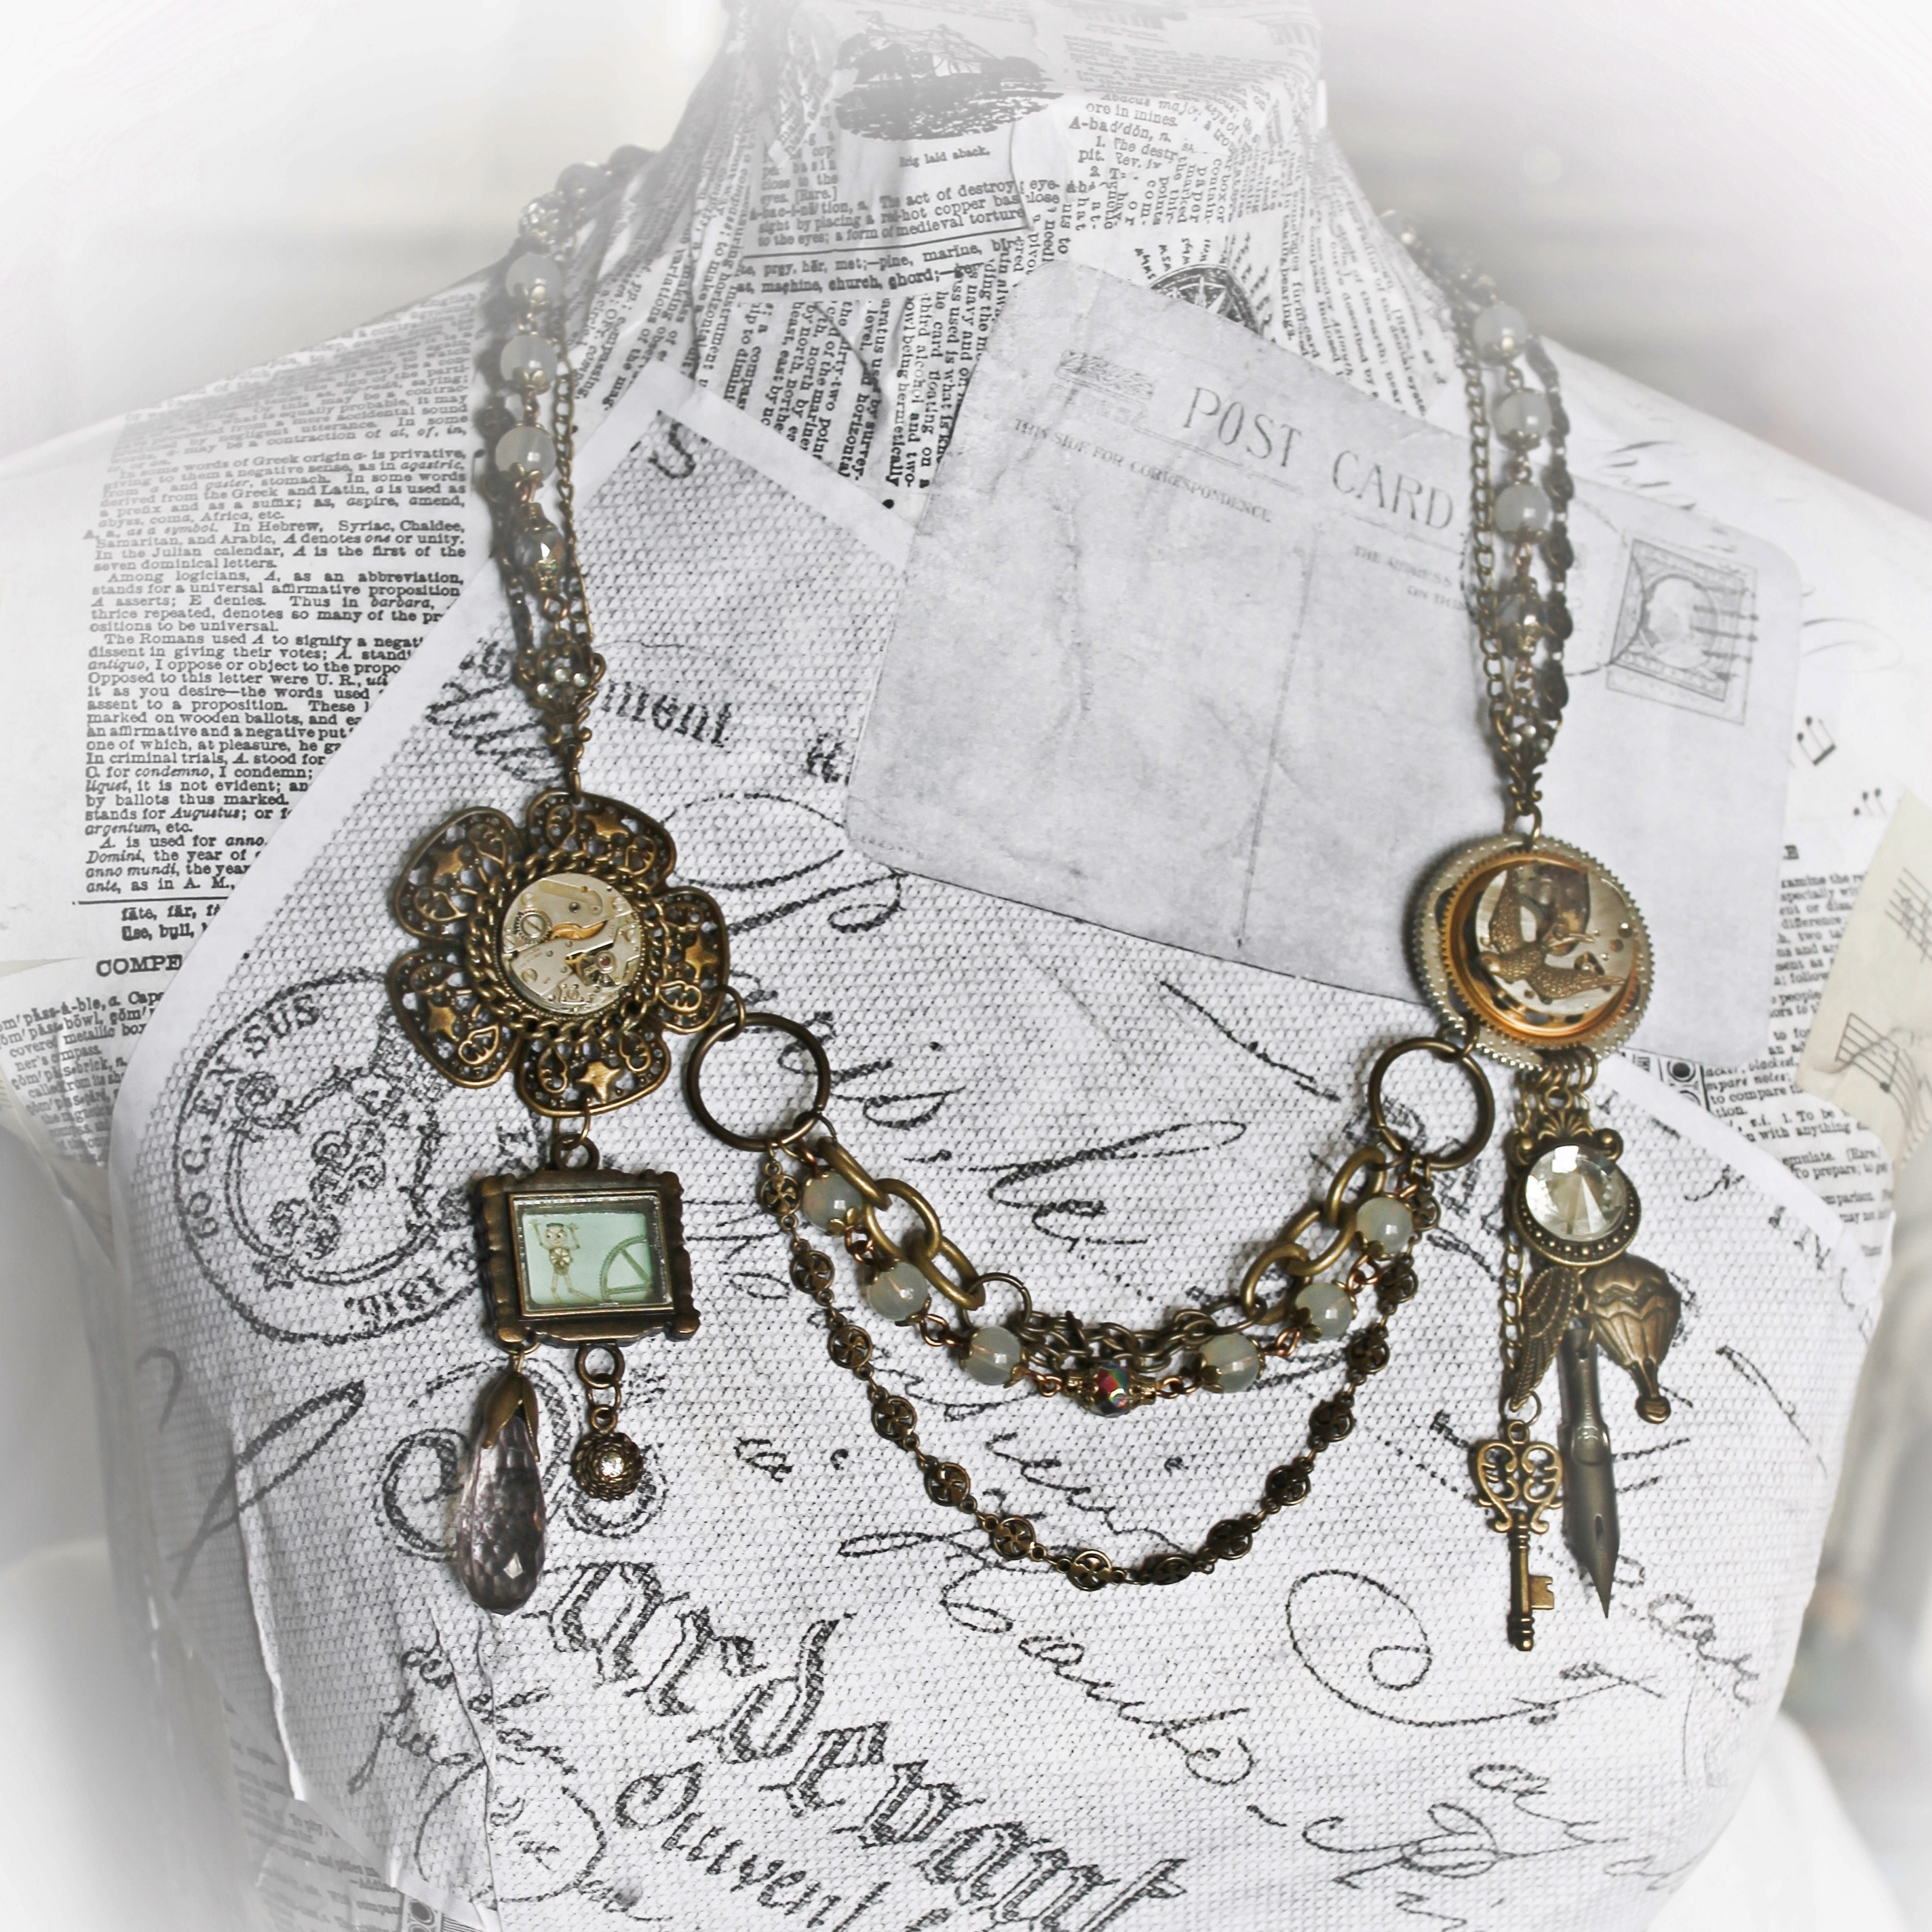 Is Steampunk Jewelry a Craft or an Art?